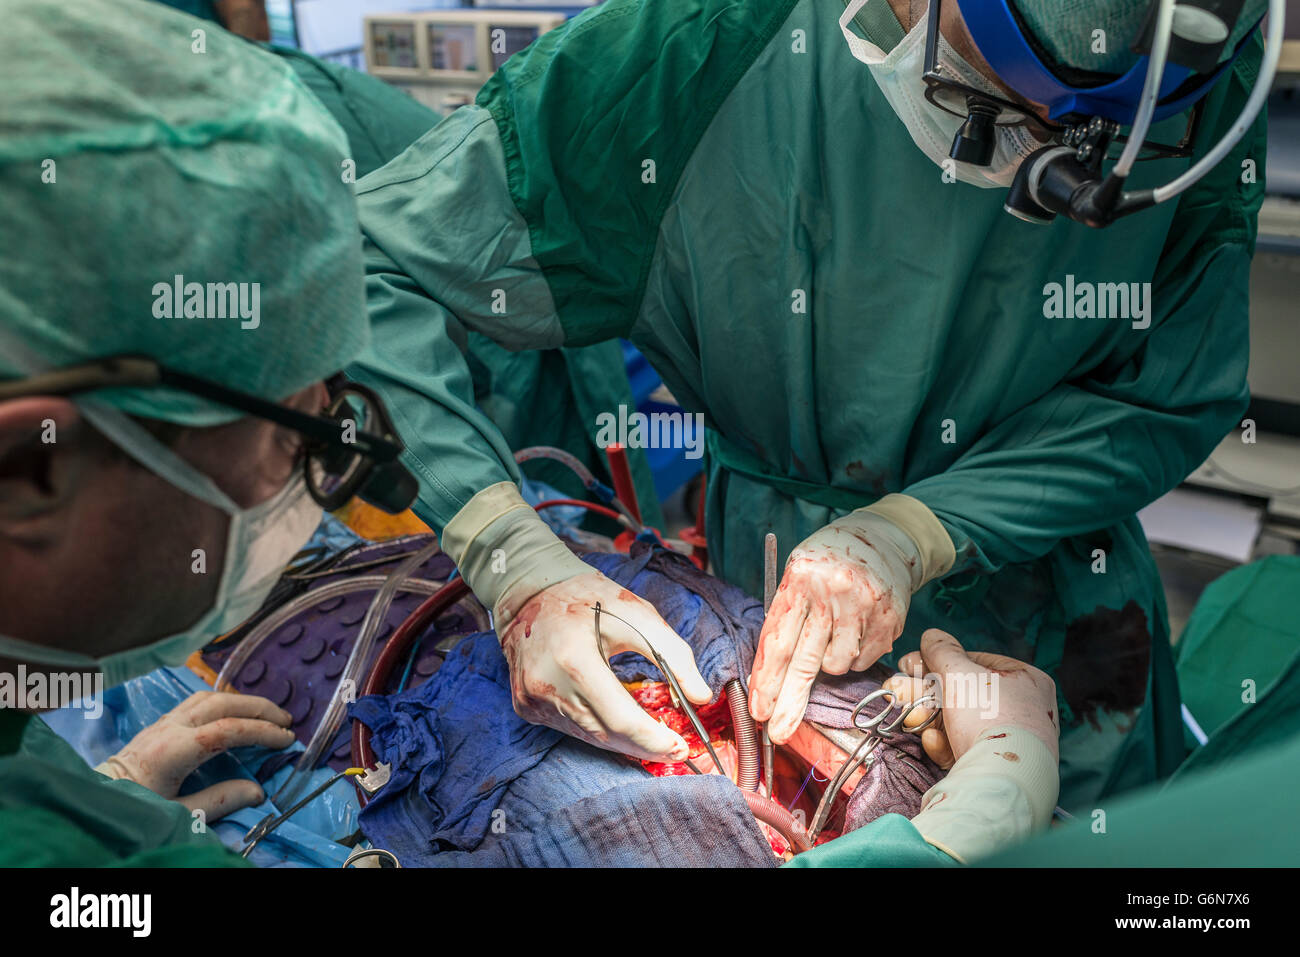 Surgeons executing heart bypass surgery - Stock Image